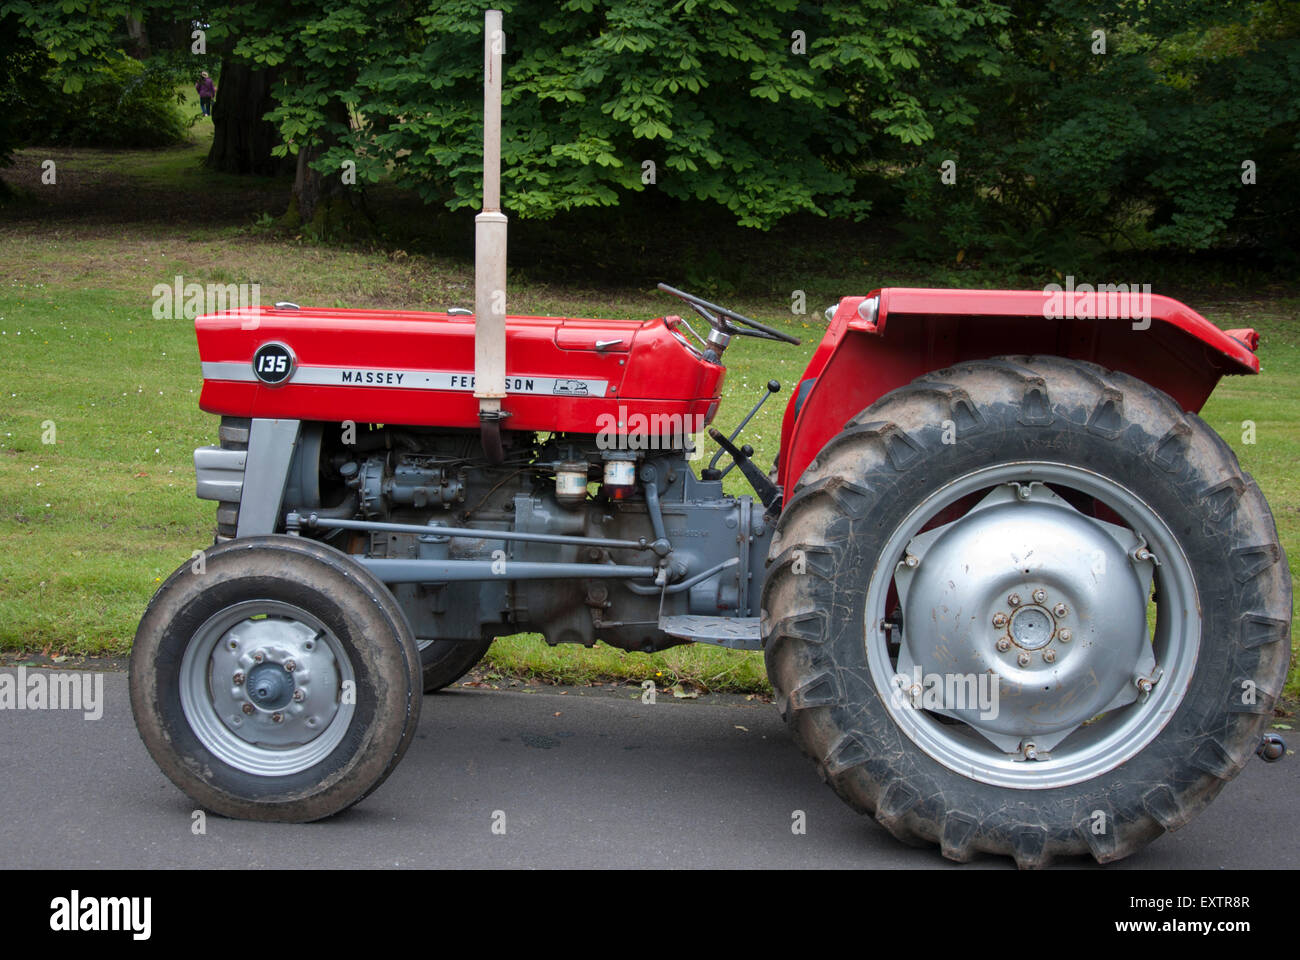 1960's Red Grey Massey Ferguson 135 Series Tractor